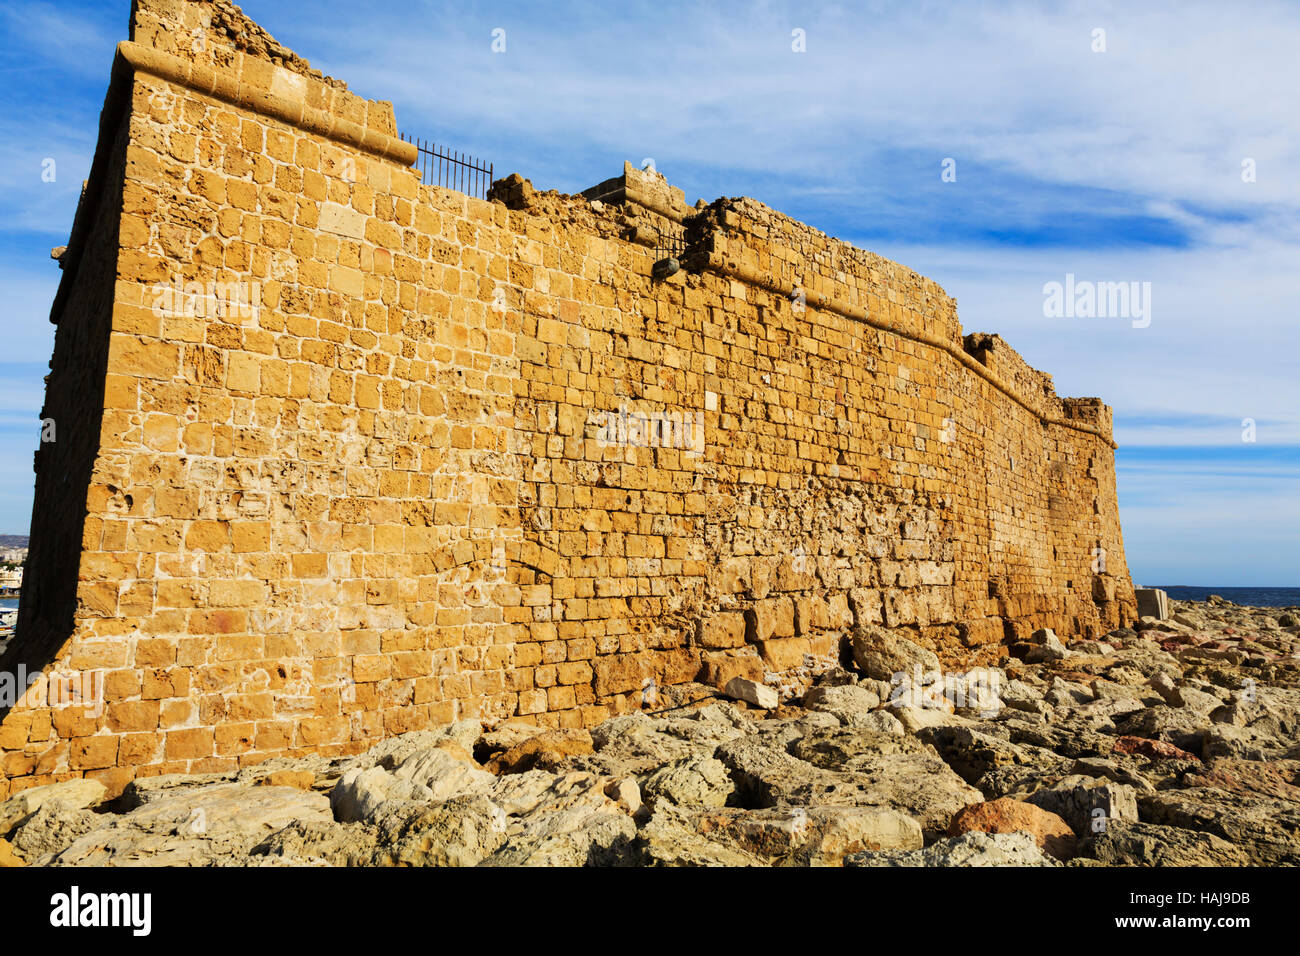 Paphos castle from the sea, Cyprus - Stock Image